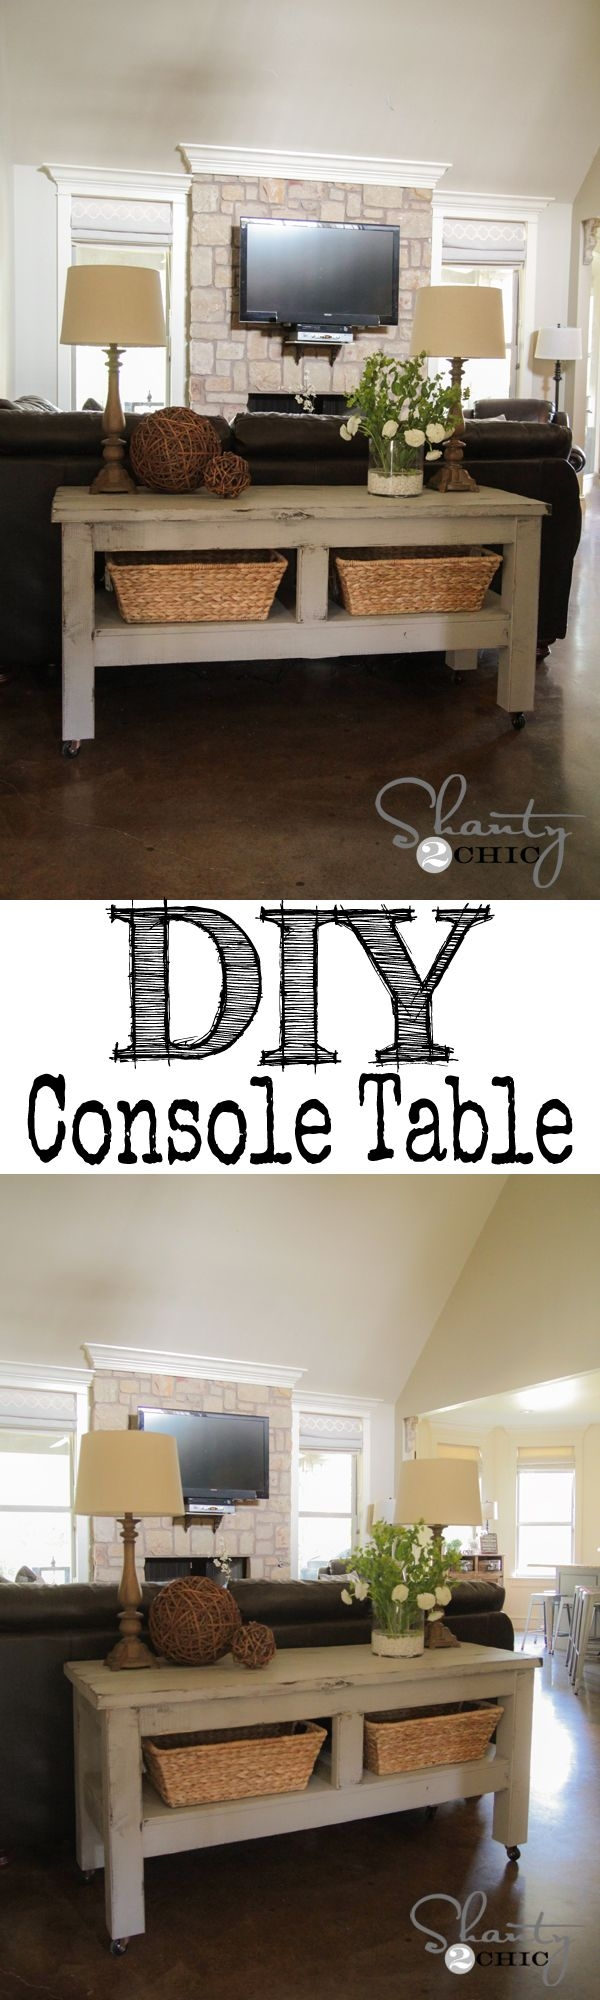 LOVE this $80 Pottery Barn inspired console table behind the couch ...